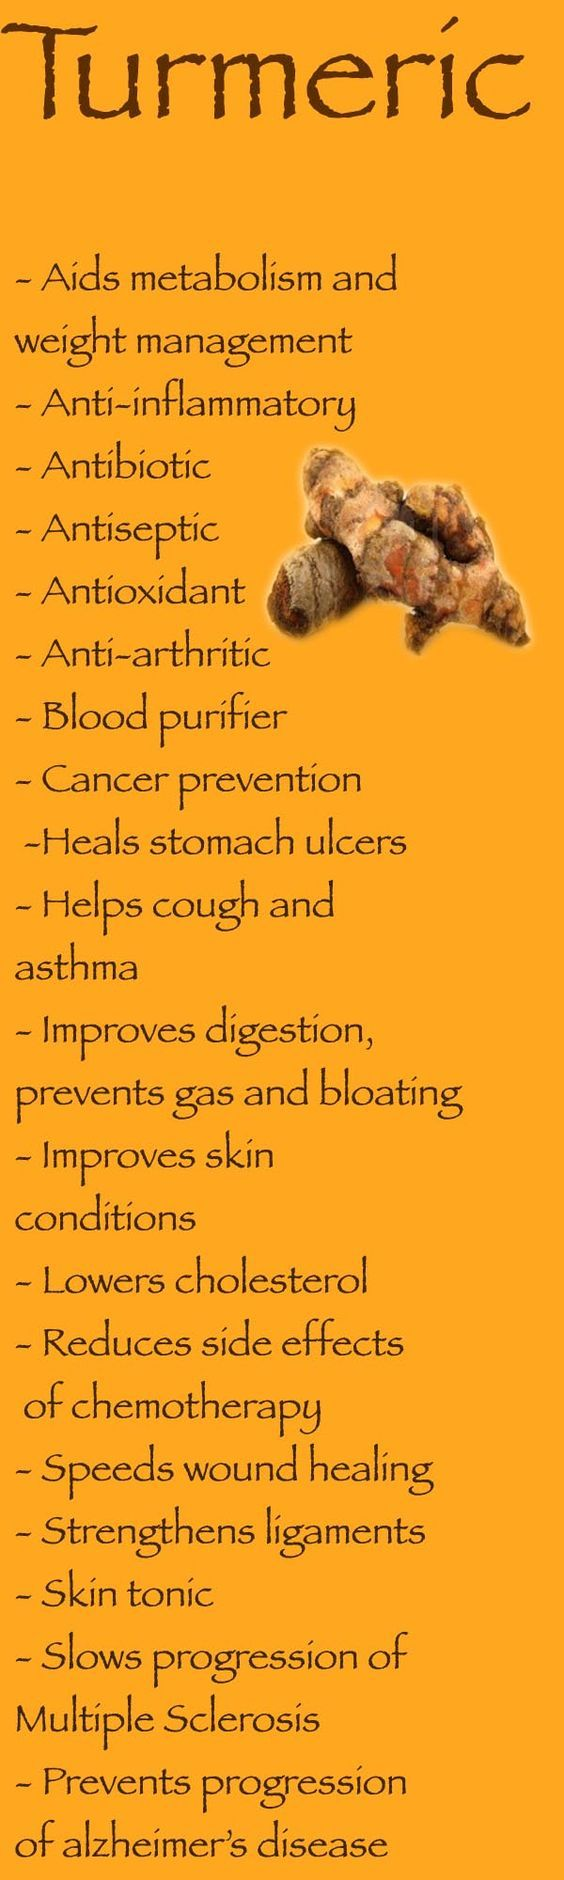 A safer & more natural way to relieve pain is by using turmeric rather than Advil that is toxic to the heart esp in those older than 40, a plant with healing powers hidden & pronounced pain.